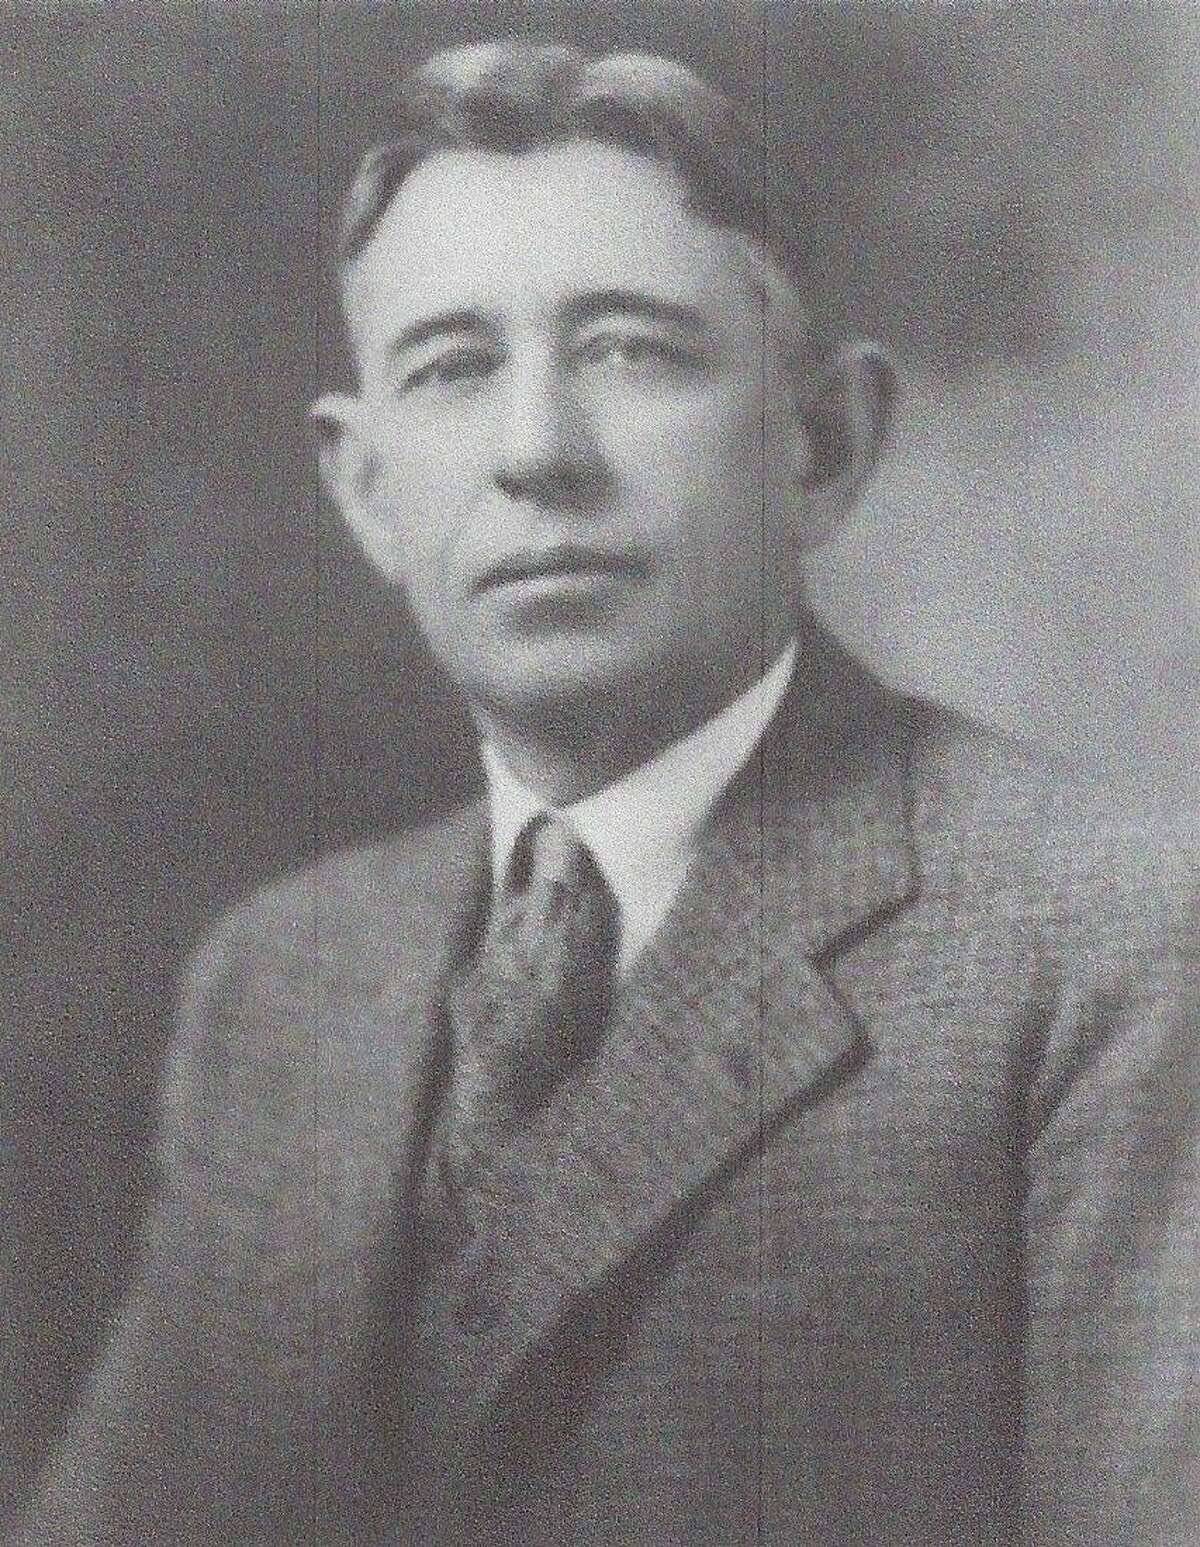 Dr. Thomas S. Falvey was one of 16 children and was perhaps the most respected doctor and surgeon in Conroe during the first half of the 20th century.